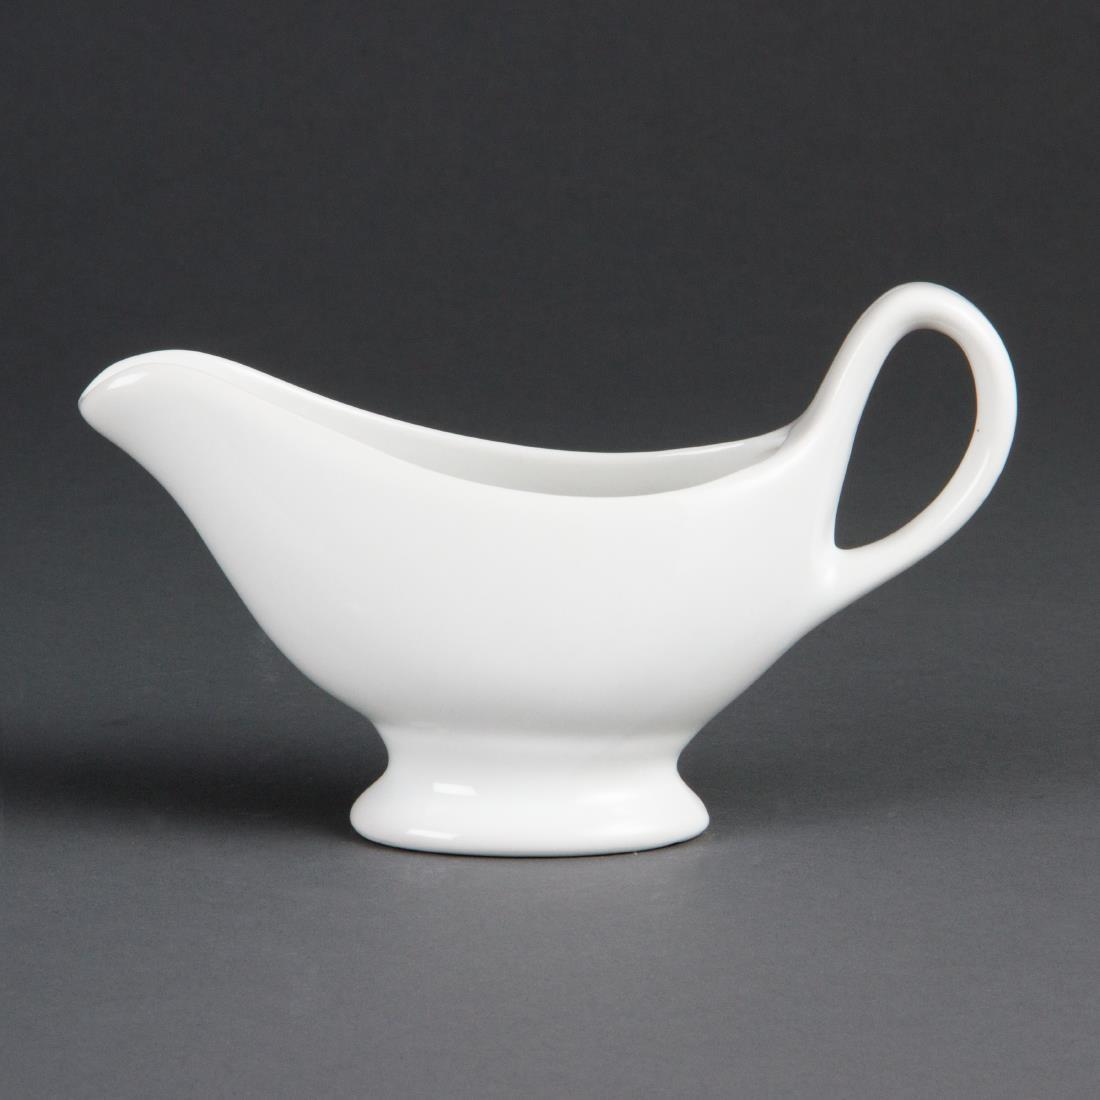 Olympia Whiteware Gravy Boats 215ml 7.5oz